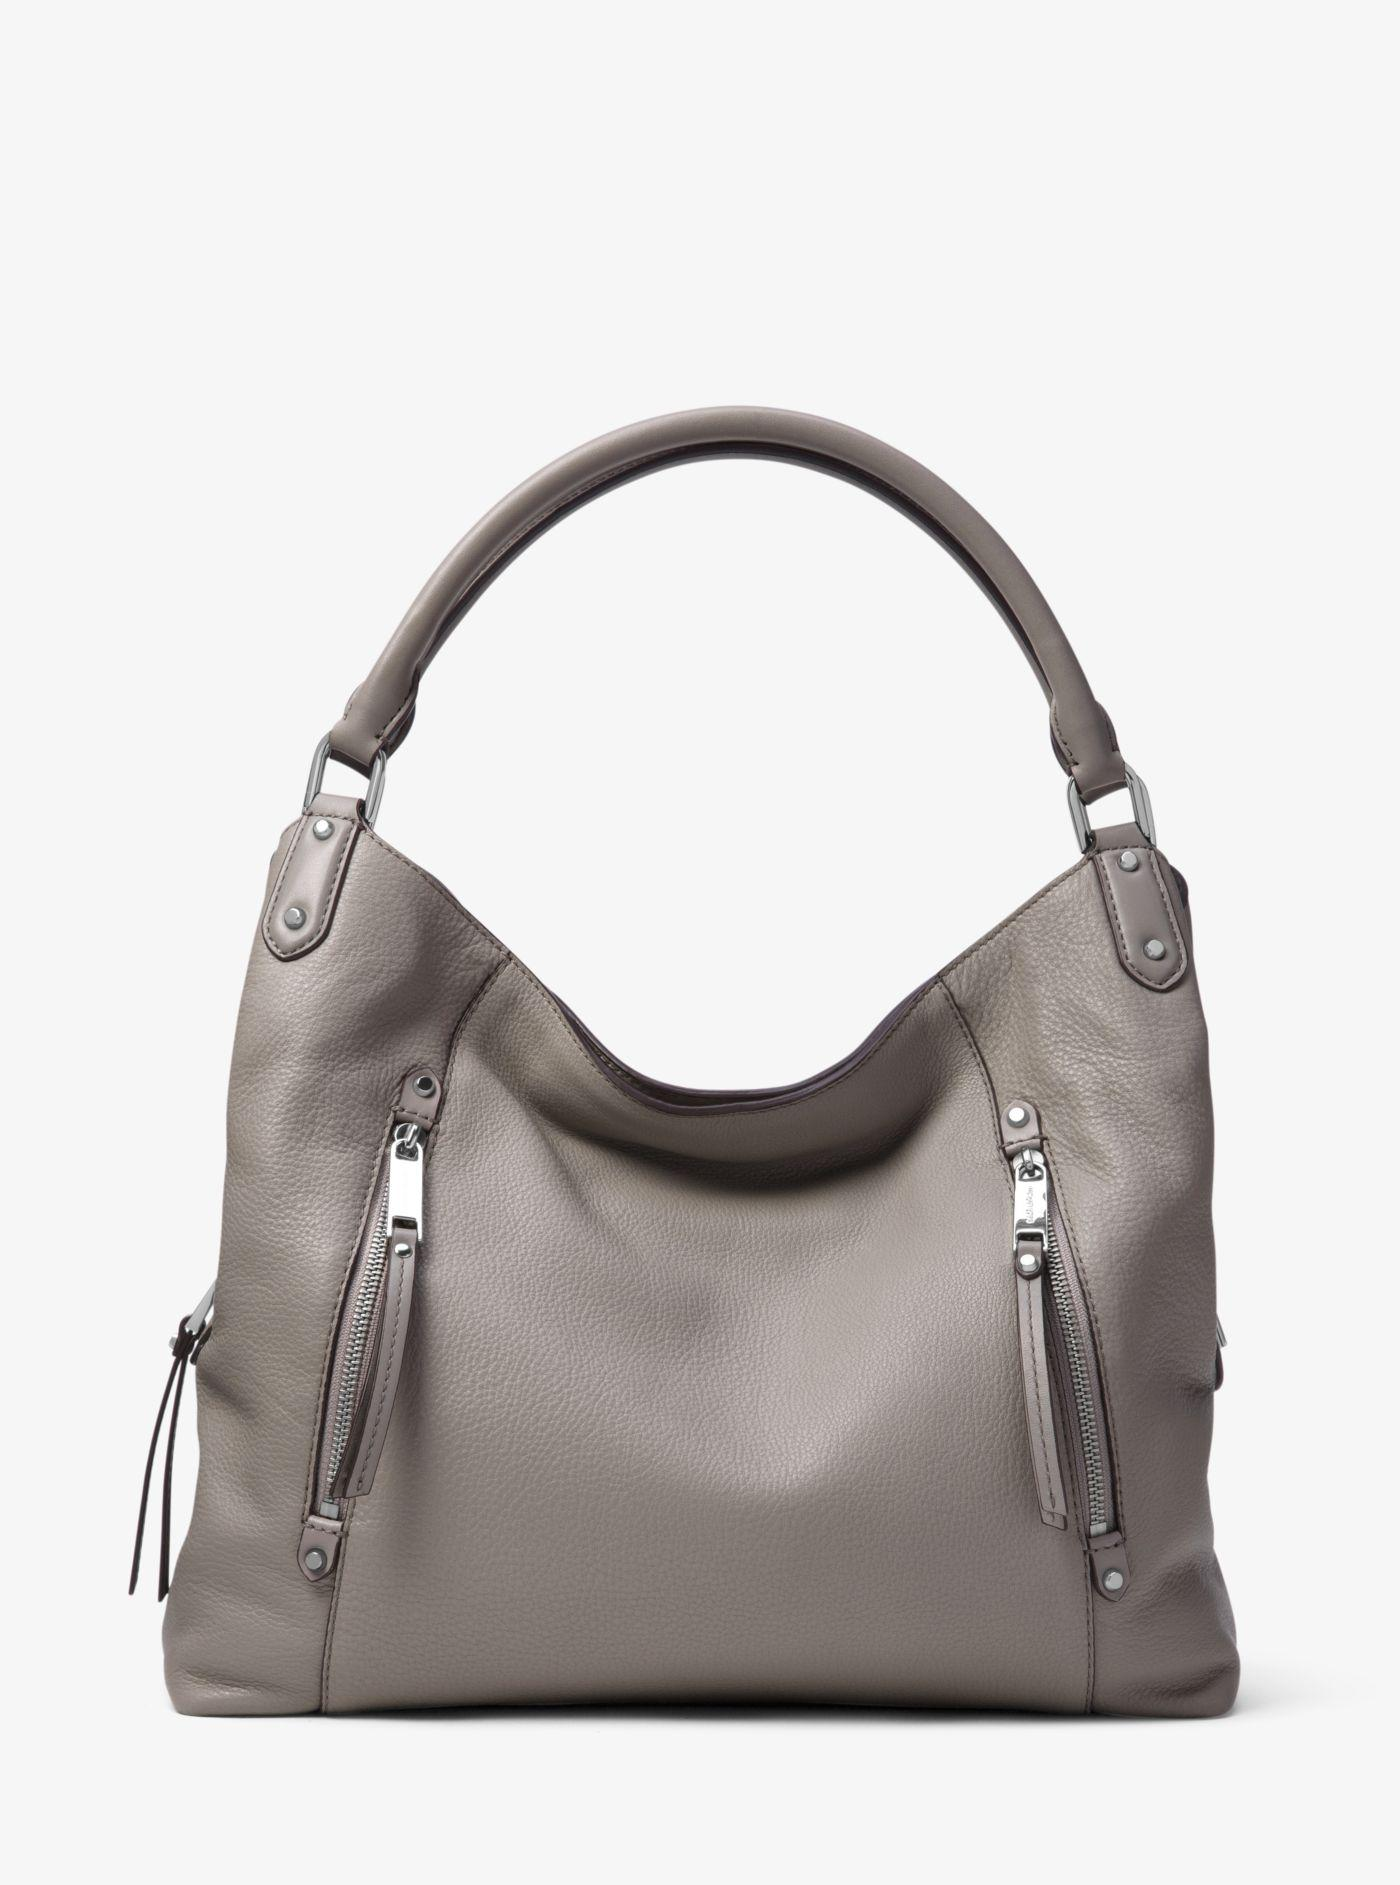 65ccb824ca84 Lyst - Michael Kors Evie Large Leather Shoulder Bag in Gray